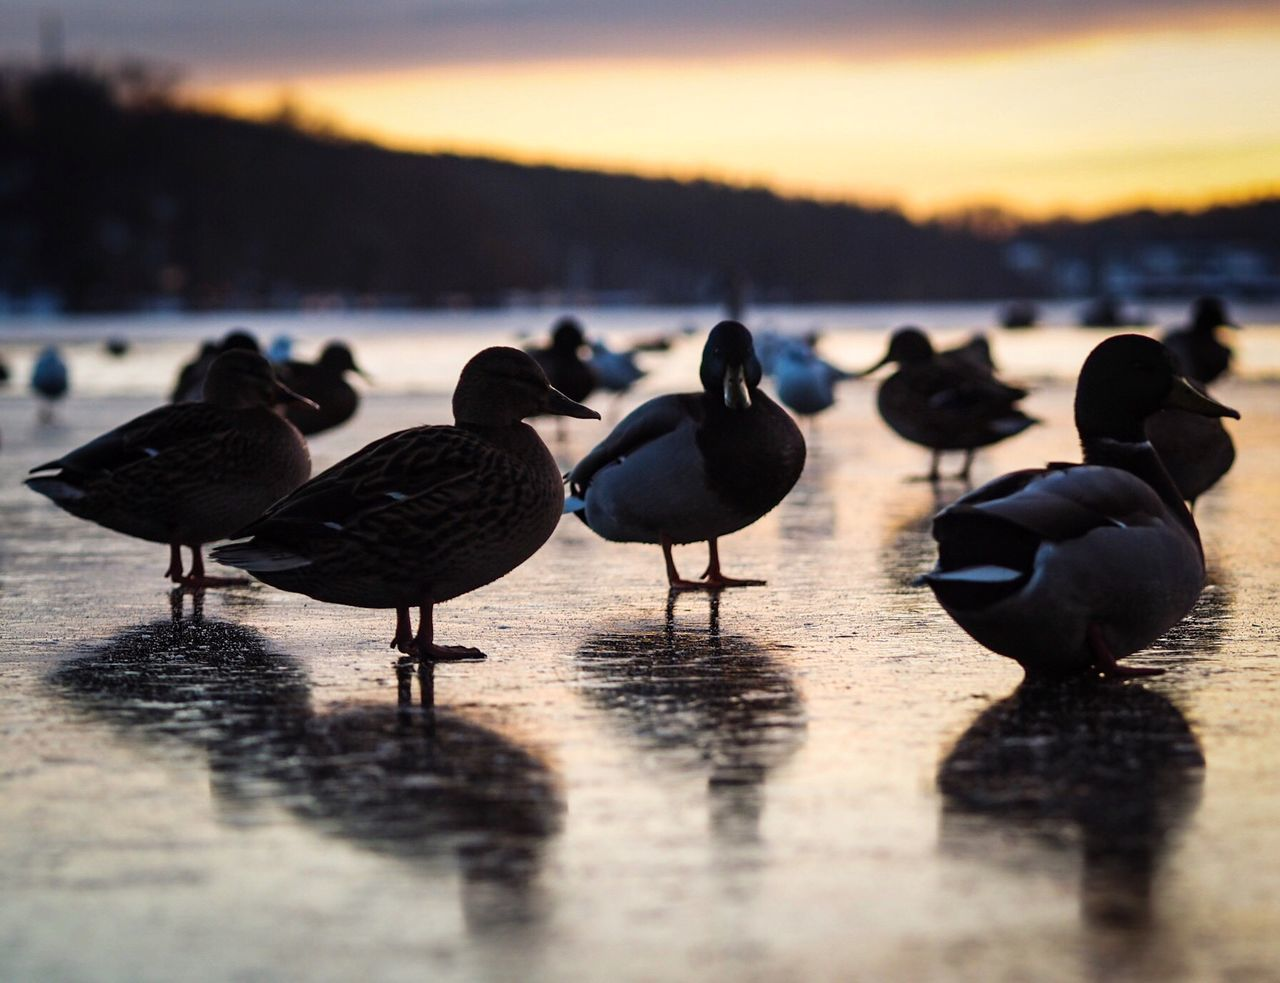 Sunset Water Reflection Bird Sea Nature Animal Wildlife Beach Animals In The Wild Animal Themes Beauty In Nature Ducks Duck Outdoors Olympus OM-D E-M5 Mk.II Olympus Focus On Foreground Full Frame Outside Lake Frozen Lake View Lakeside No People Perching